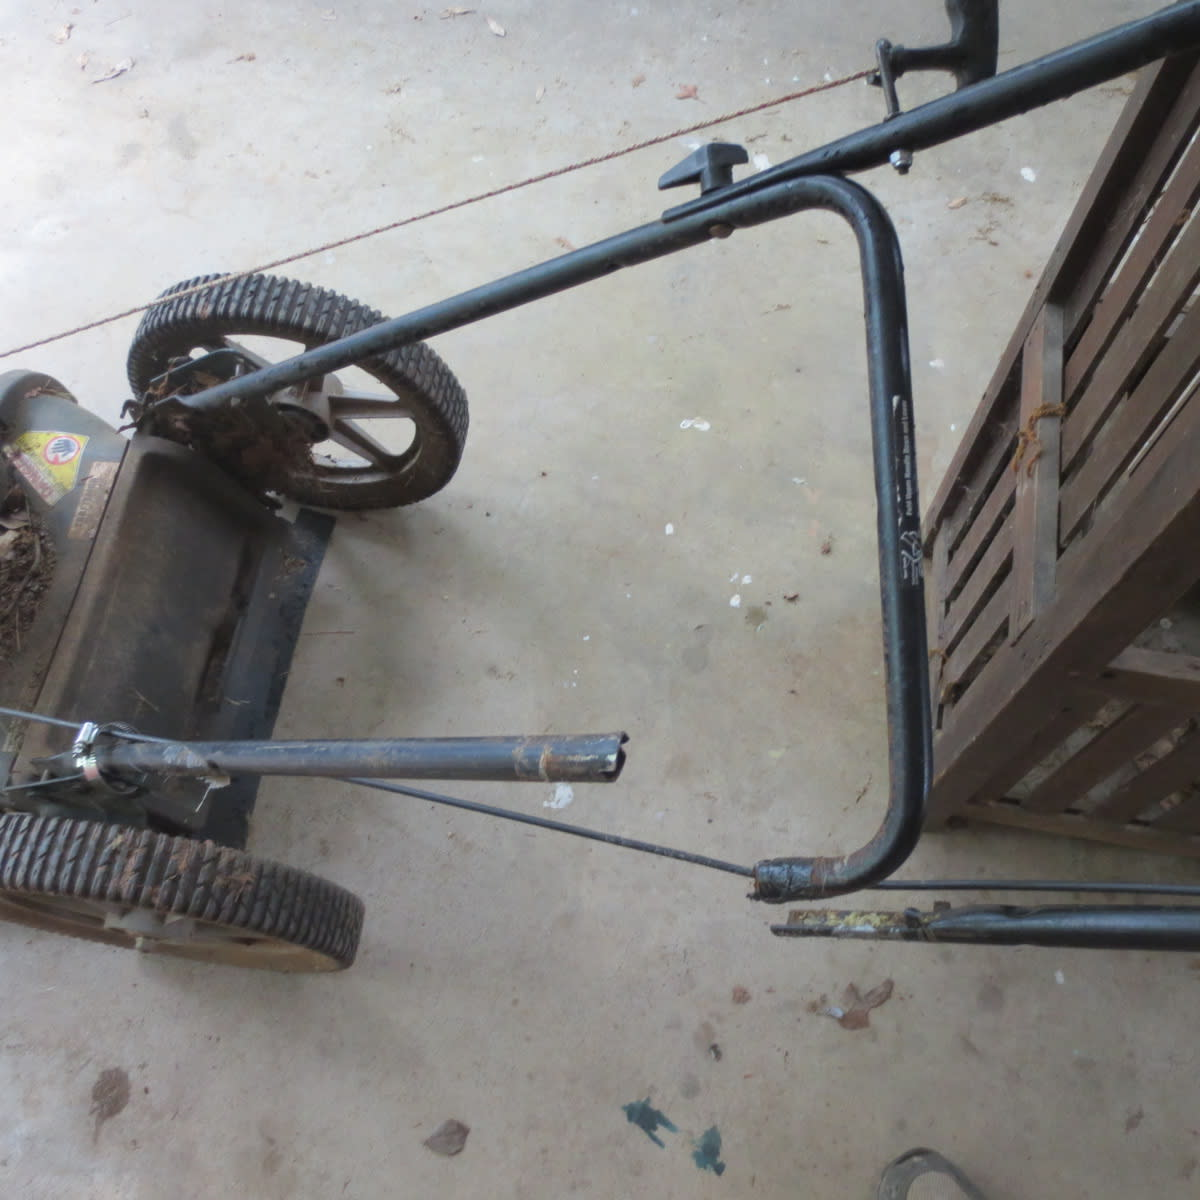 The Cheapest Way to Fix a Lawn Mower Handle Yourself